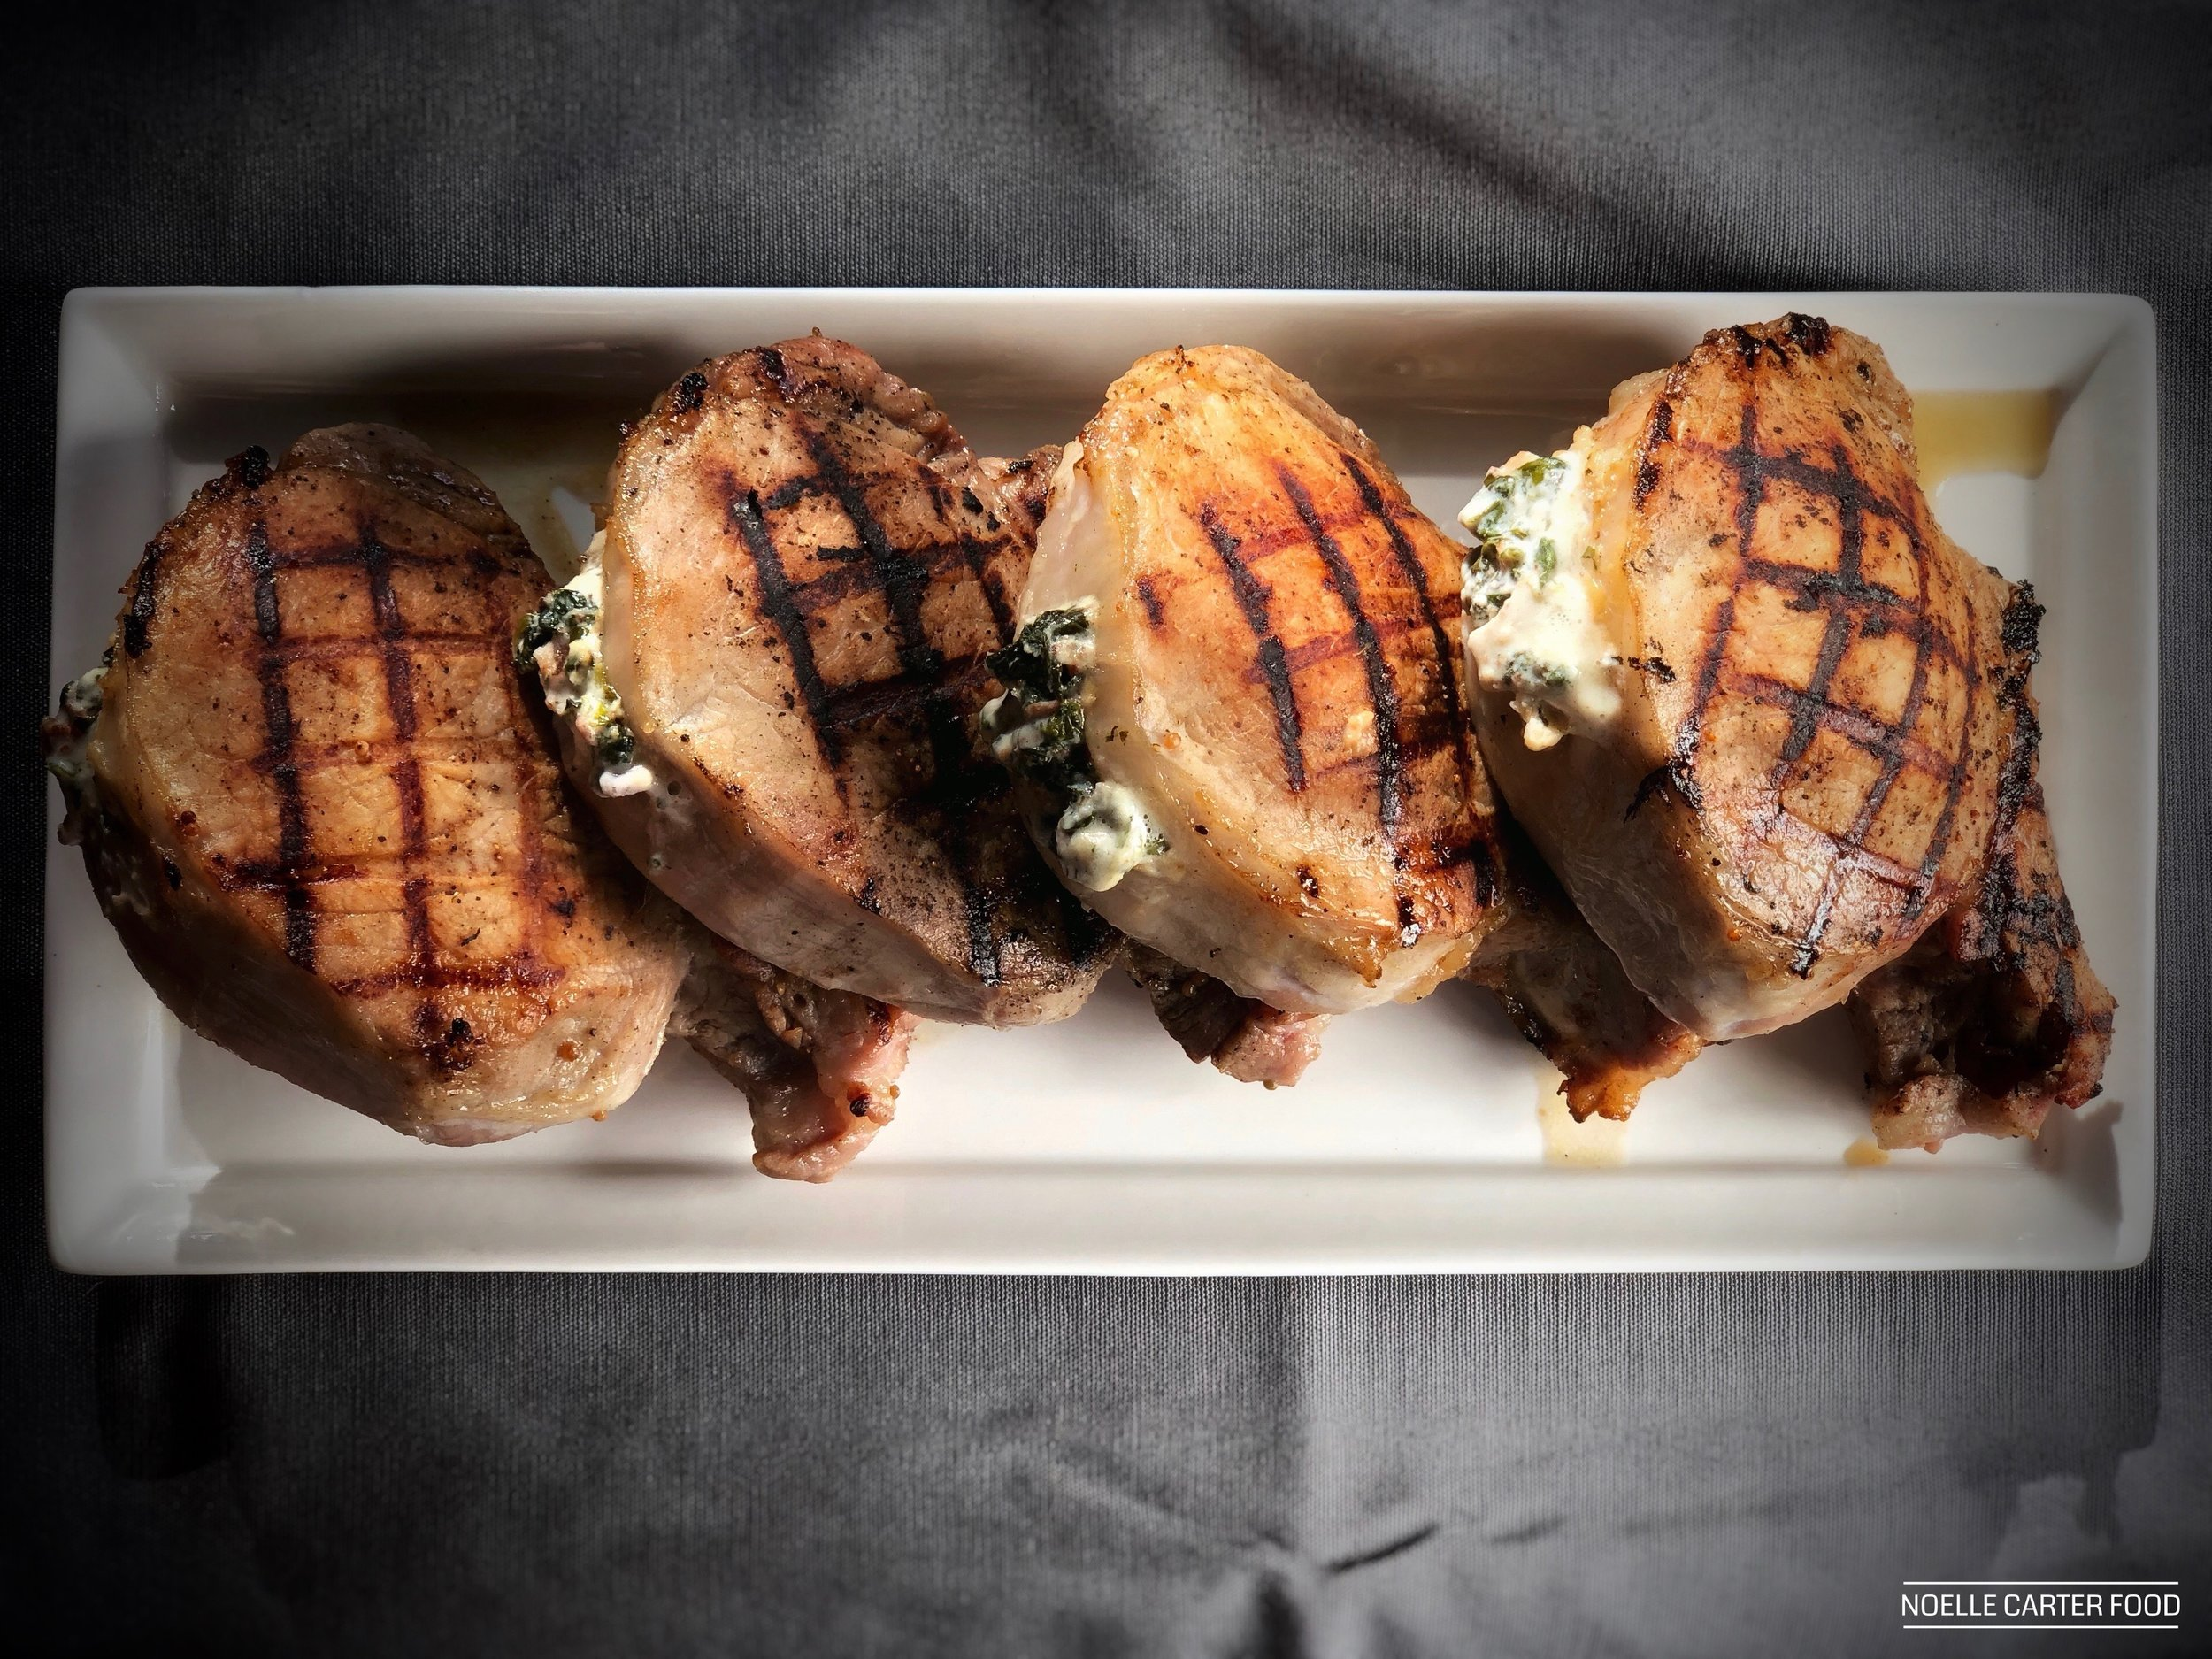 Grilled stuffed pork chops. (Noelle Carter